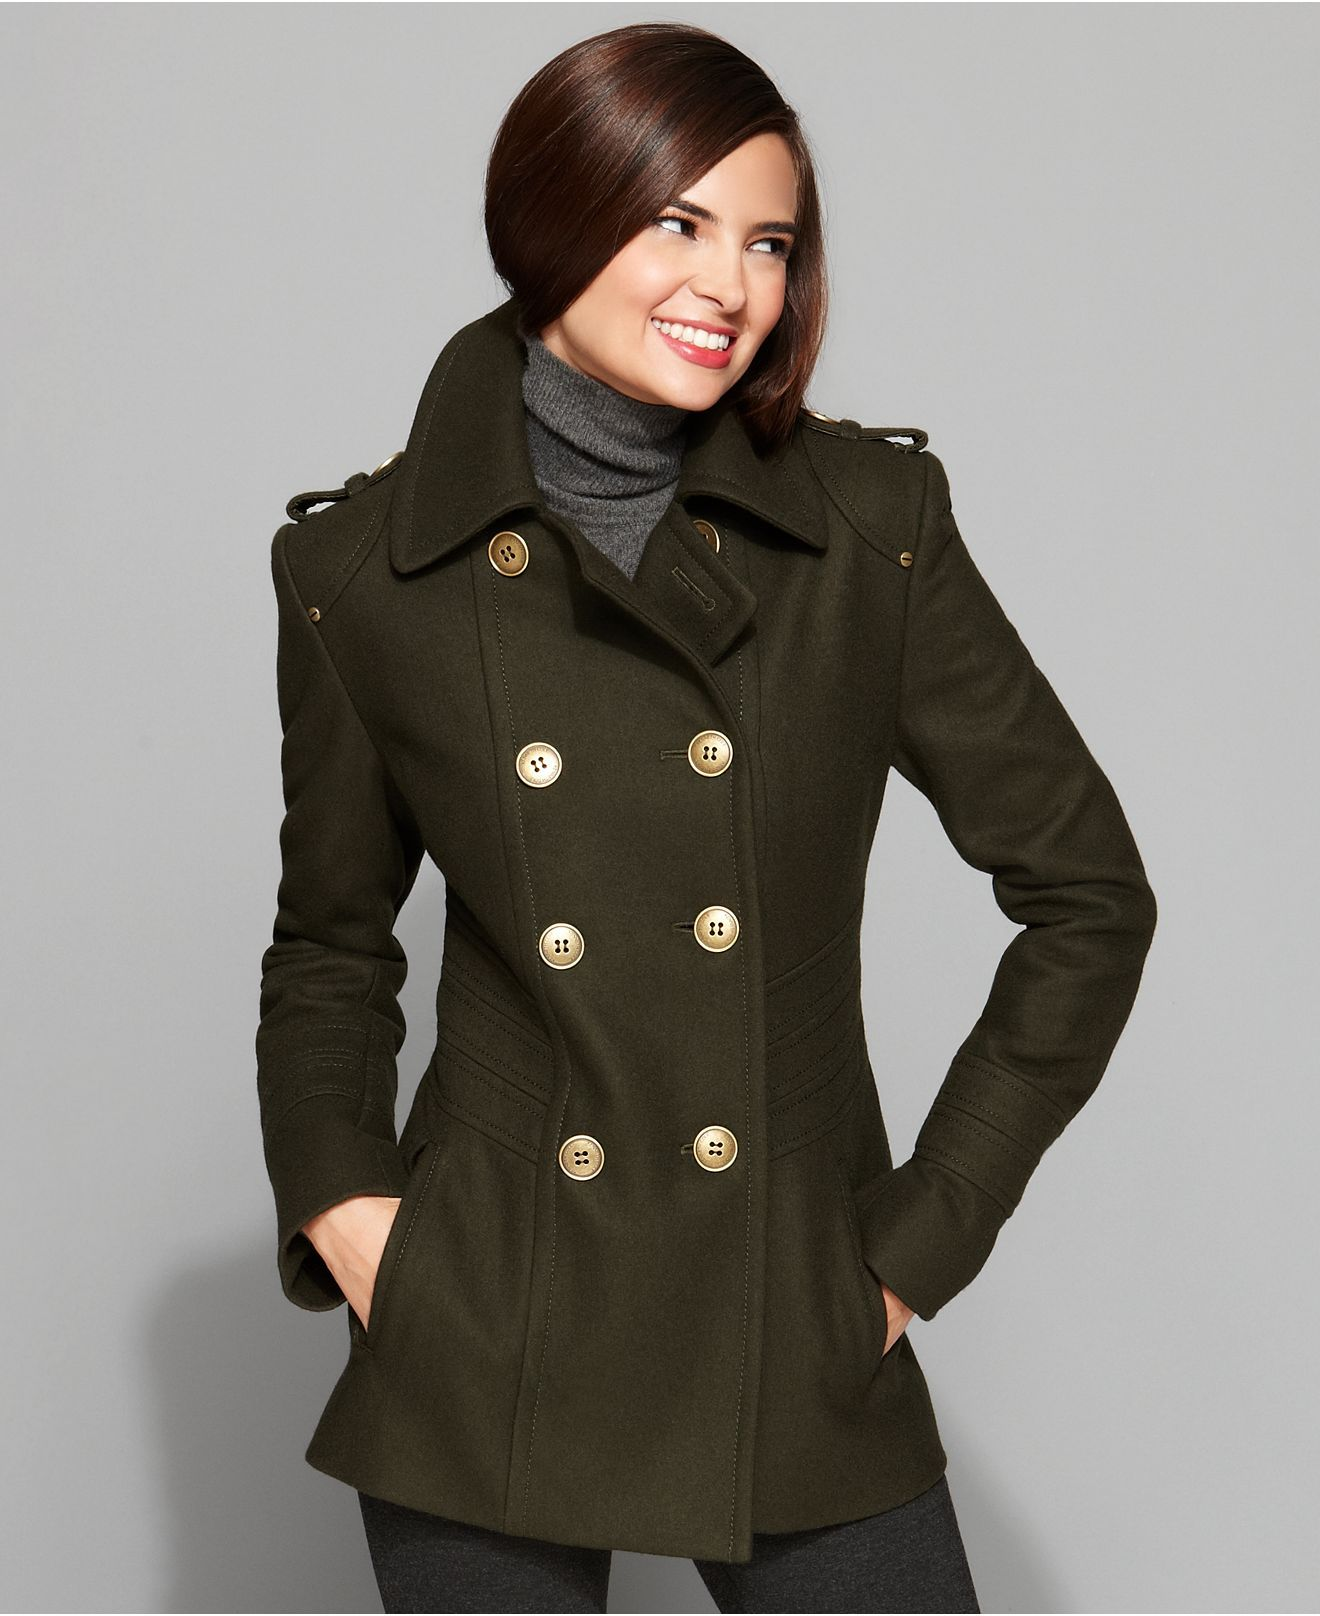 1000  images about Women&39s Pea coat Fashion on Pinterest | Wool